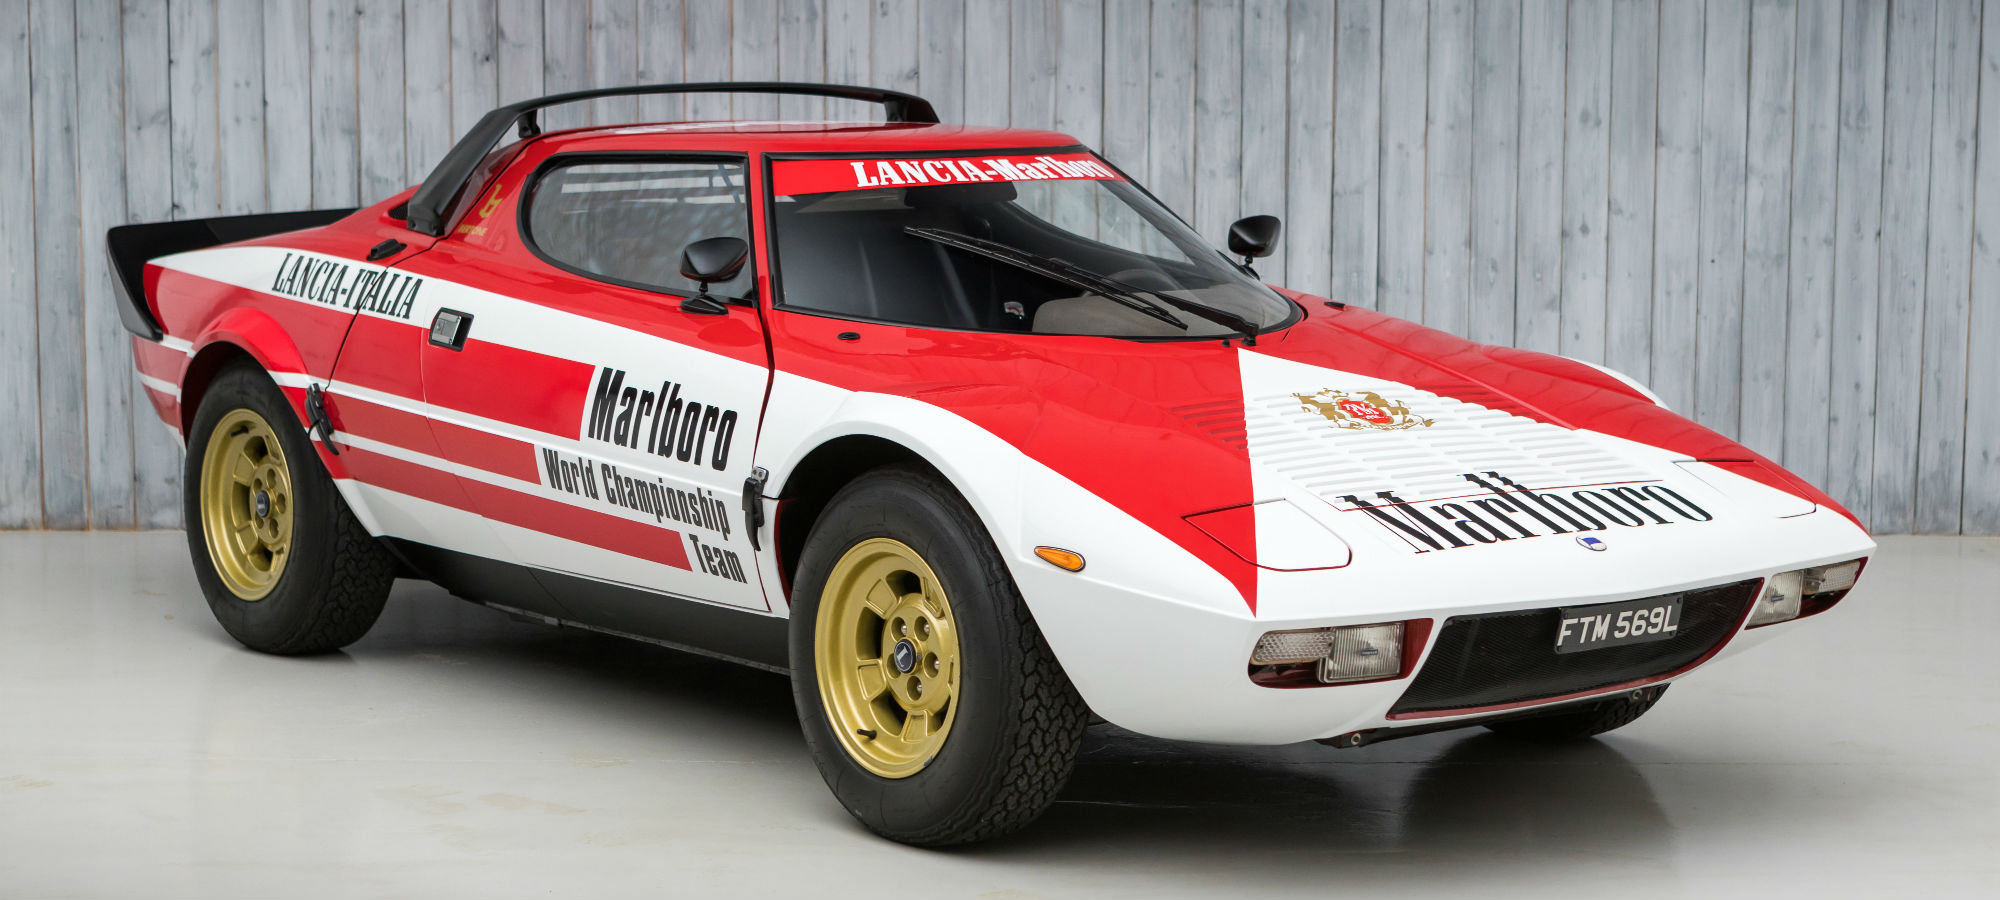 The Ex - Philip Morris, Marlboro Press Car 1974 Lancia Stratos Stradale